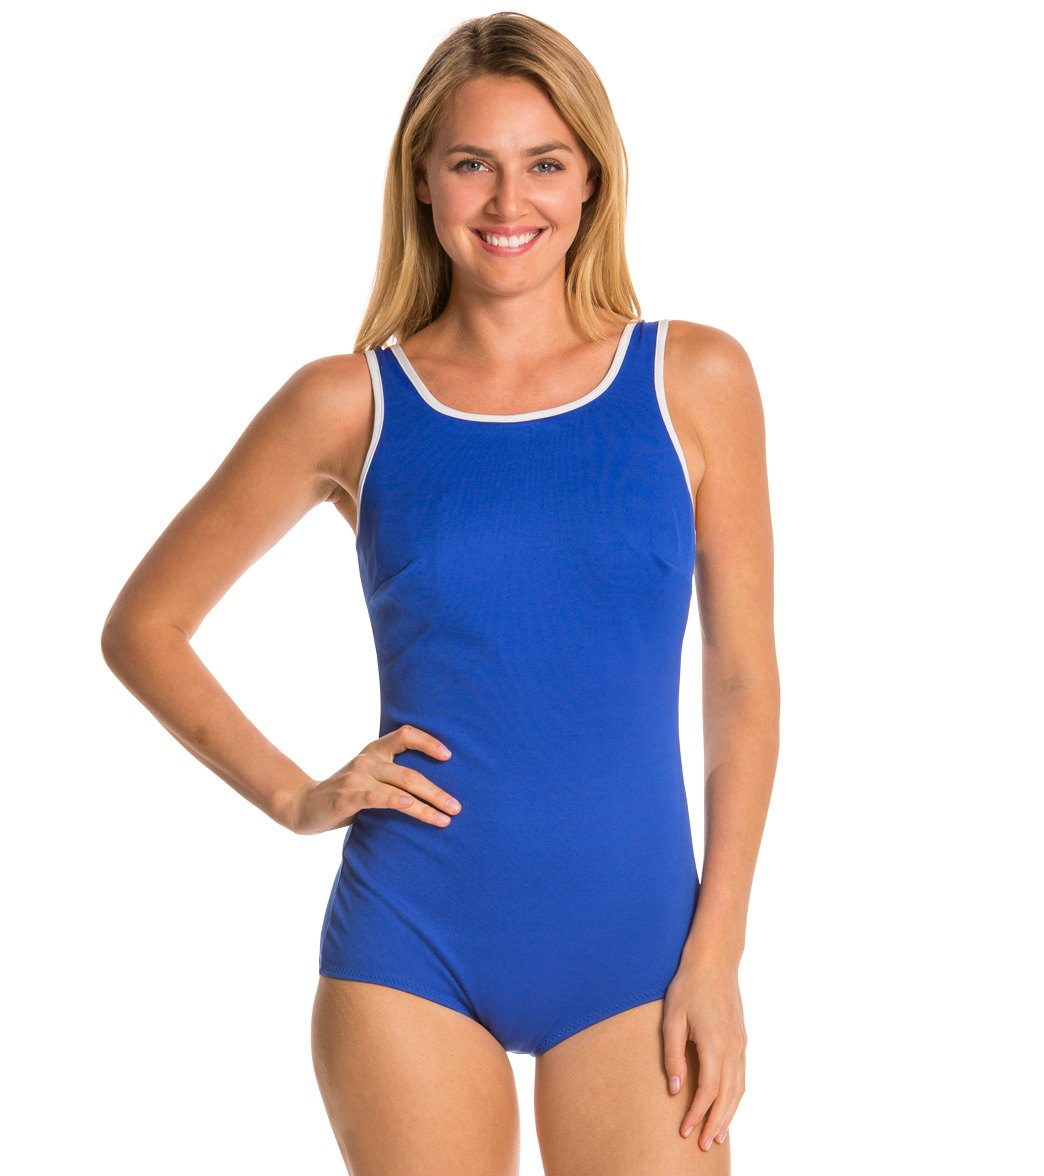 59a4629bdb Tuffy Chlorine Resistant Polyester Active Tank Mastectomy One Piece  Swimsuit at SwimOutlet.com - Free Shipping